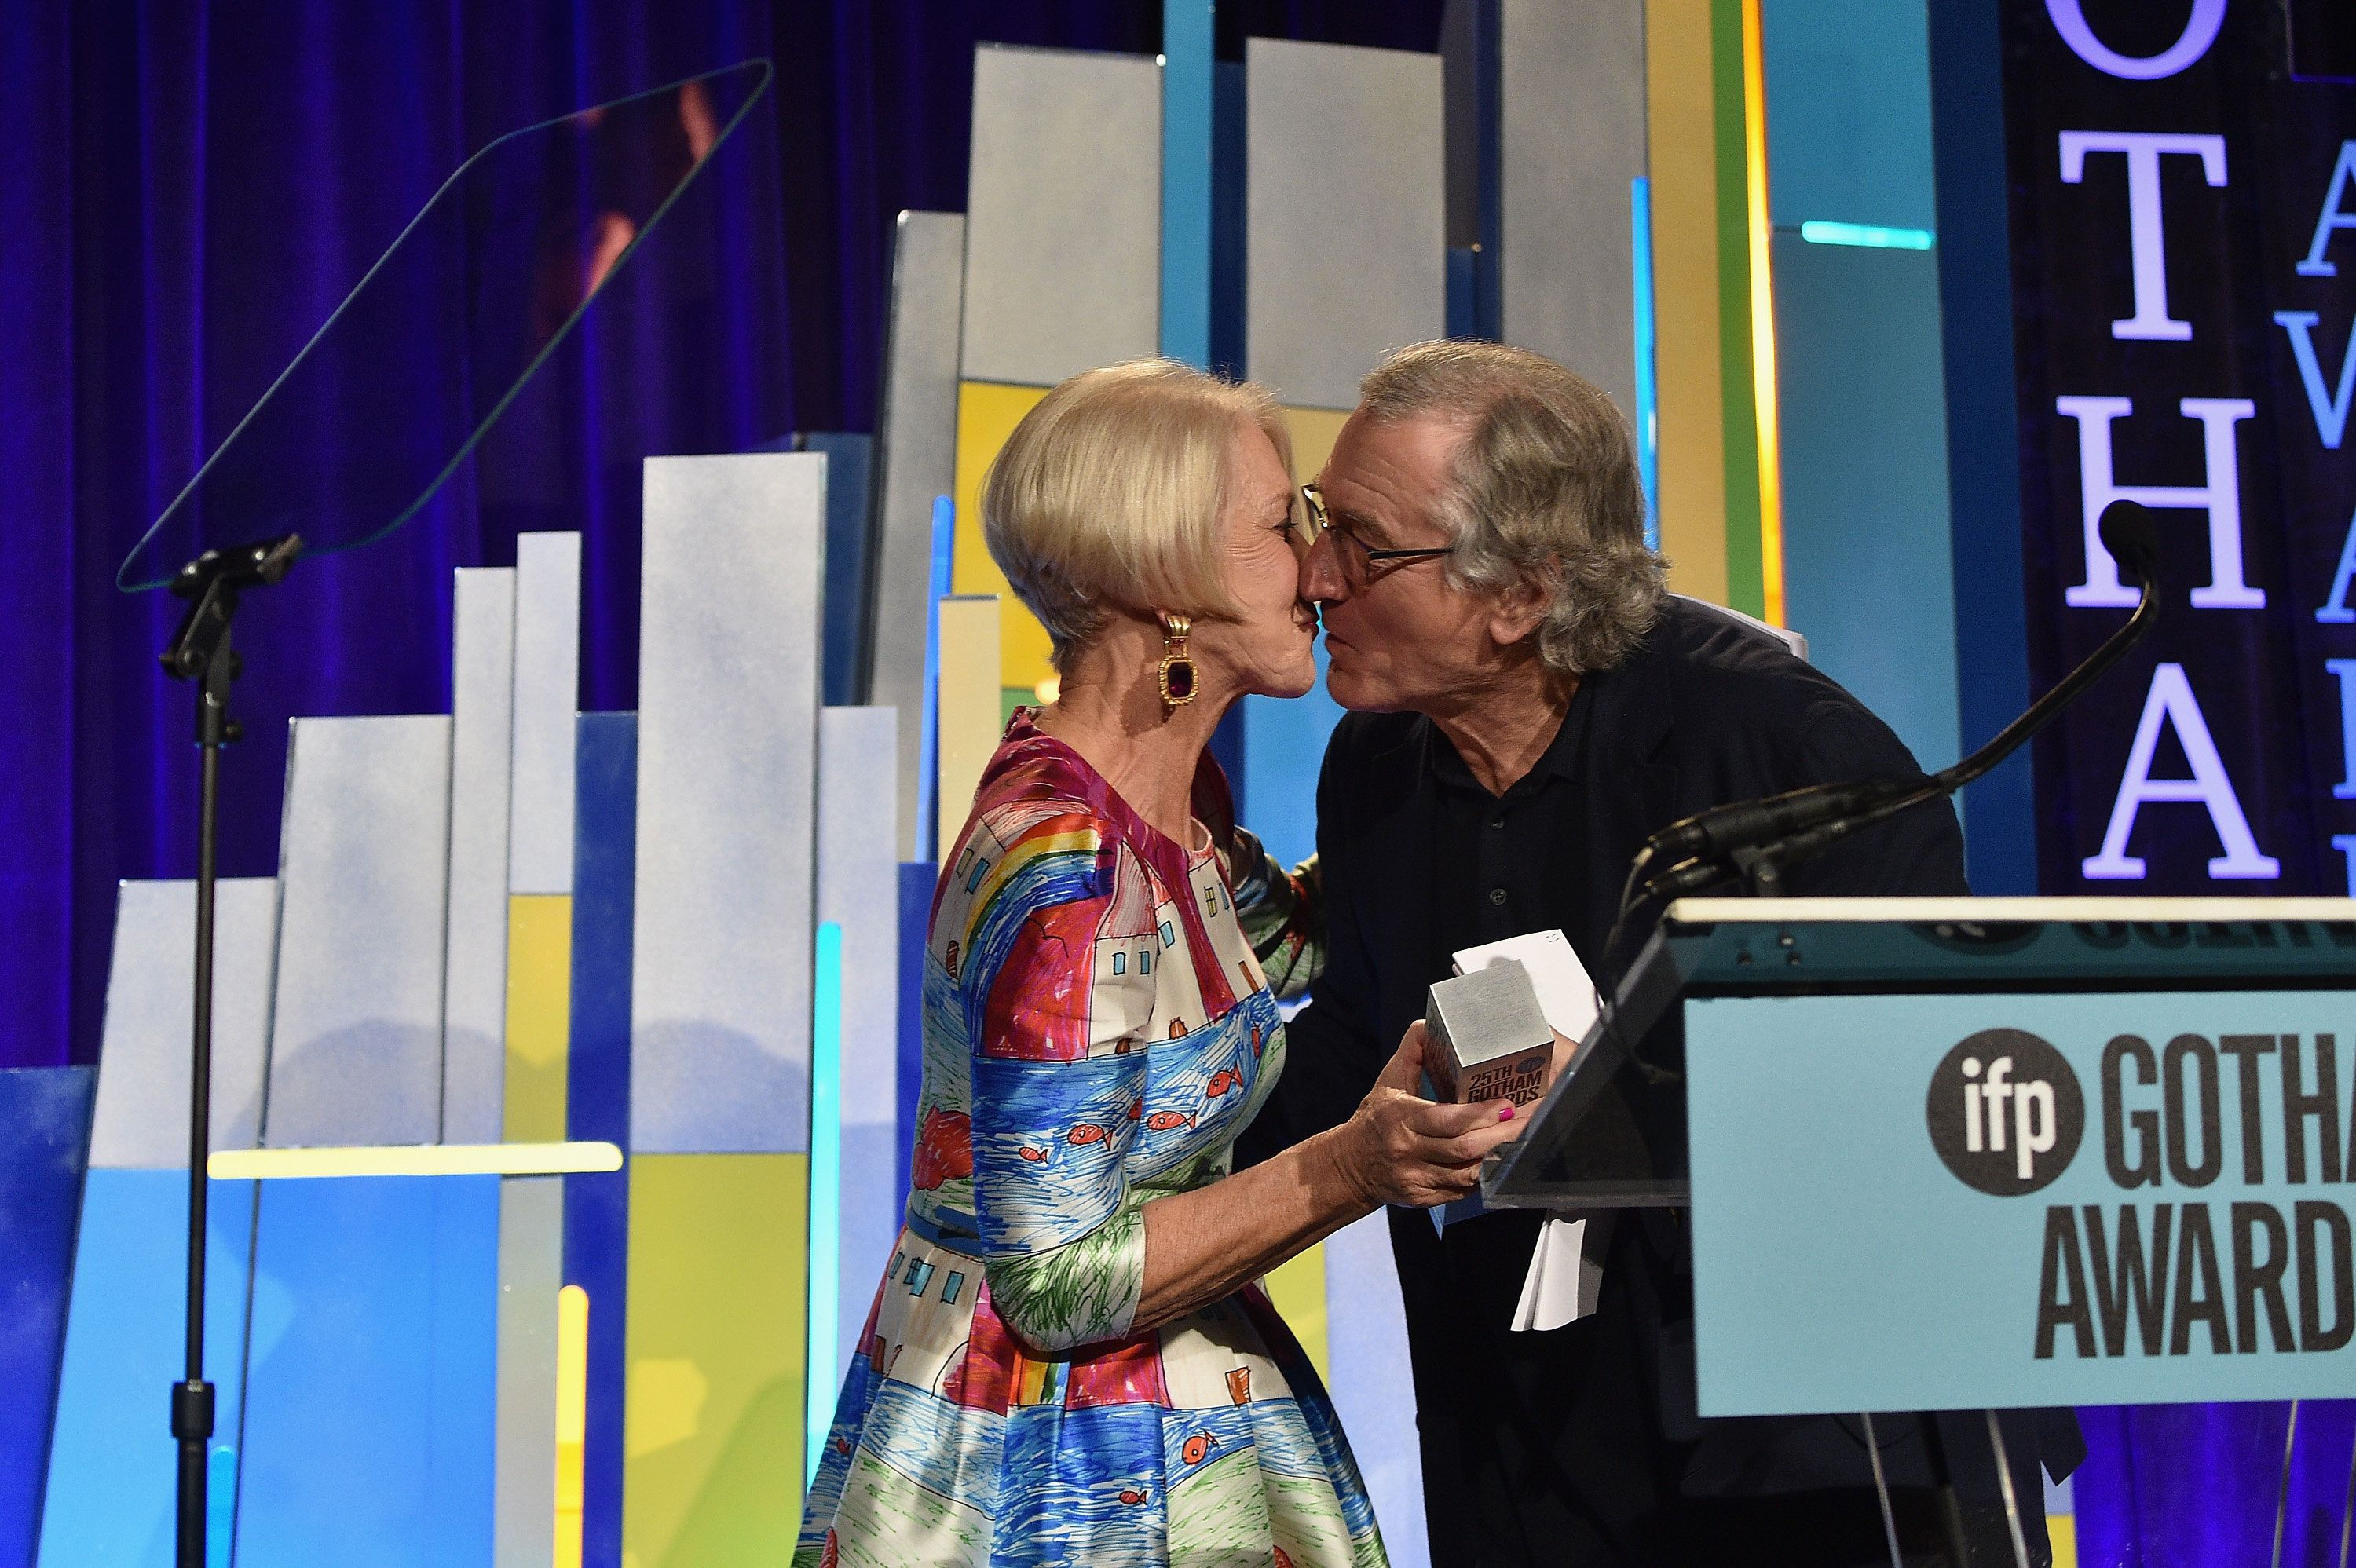 NEW YORK, NY - NOVEMBER 30:  Helen Mirren and Robert De Niro speak onstage at the 25th IFP Gotham Independent Film Awards co-sponsored by FIJI Water at Cipriani, Wall Street on November 30, 2015 in New York City.  (Photo by Larry Busacca/Getty Images for IFP)